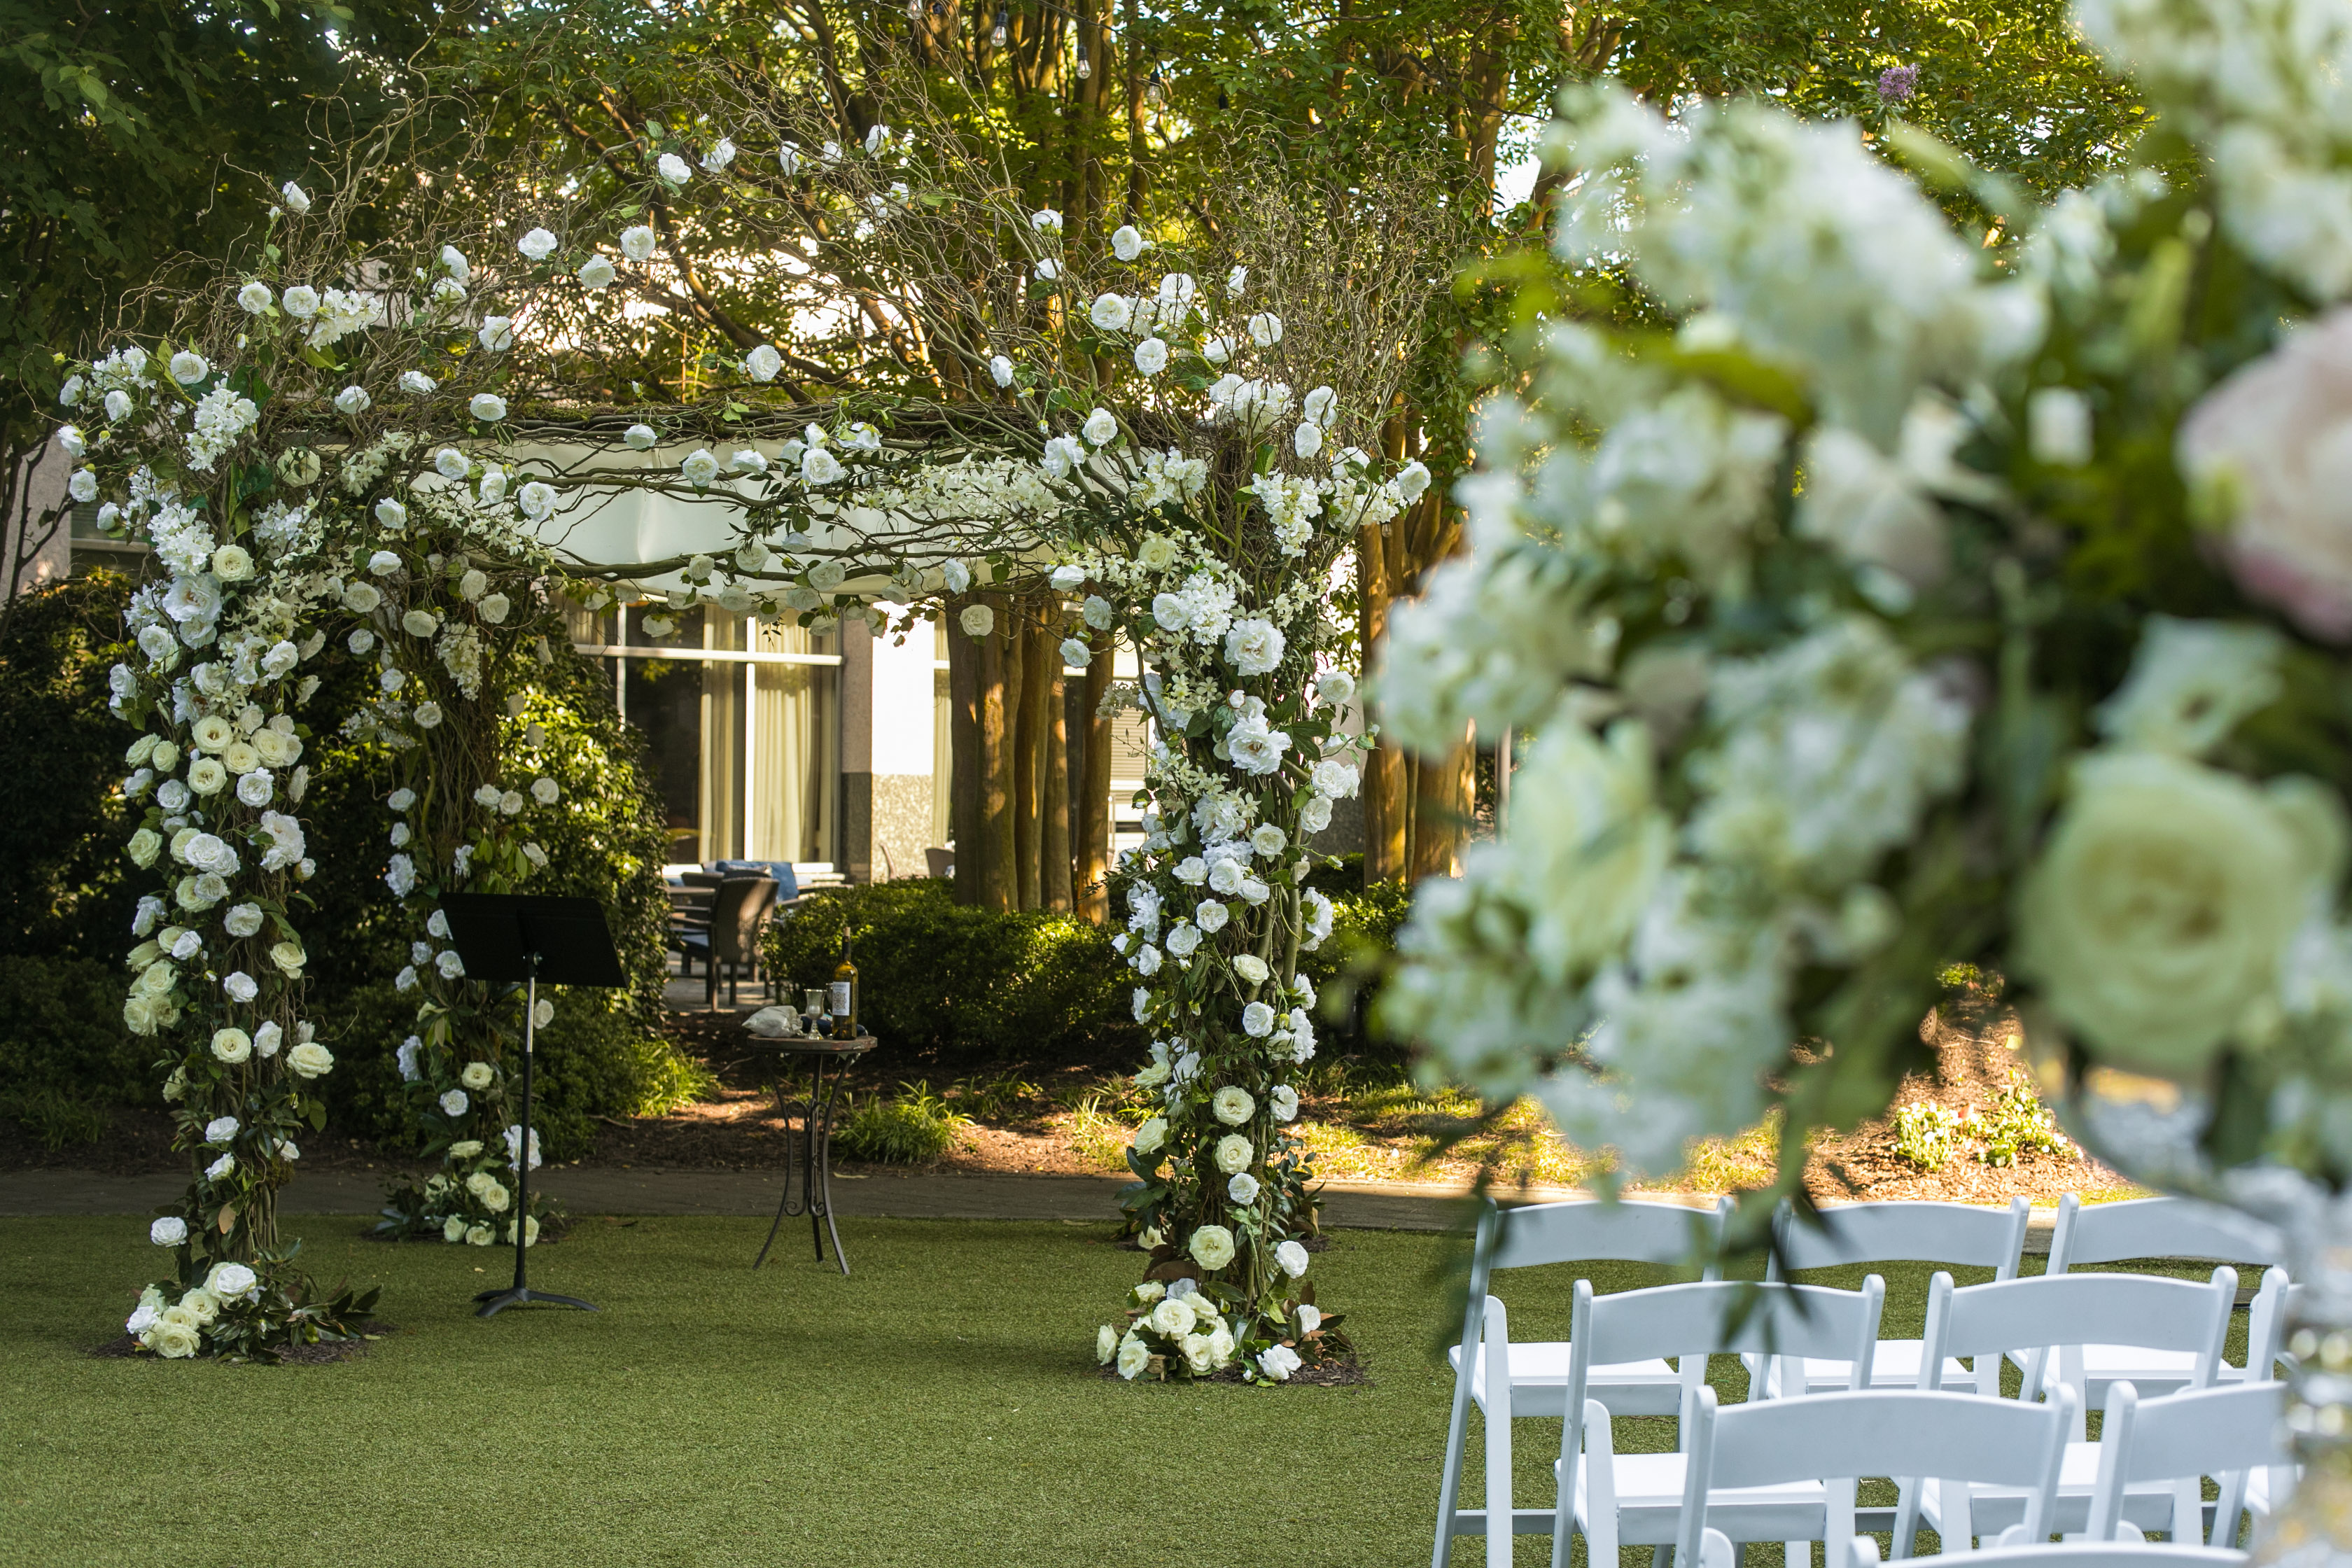 Elegant Outdoor Wedding Ceremony from top Atlanta Wedding Floral & Event Designer, Topher Mack Floral & Events from Chris Macksey